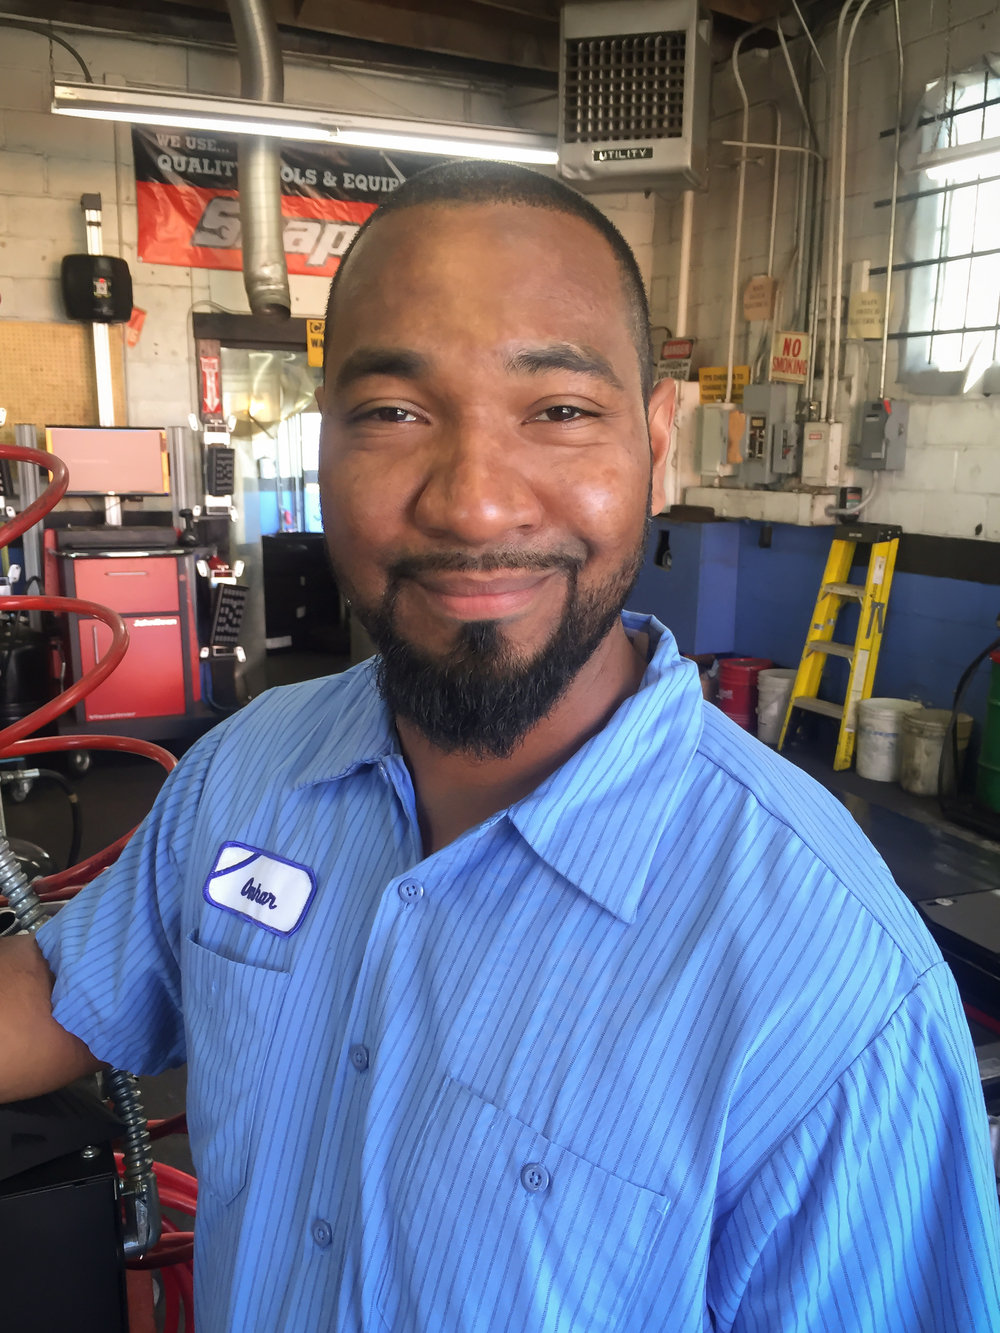 Omhar Rodriguez, Mechanic